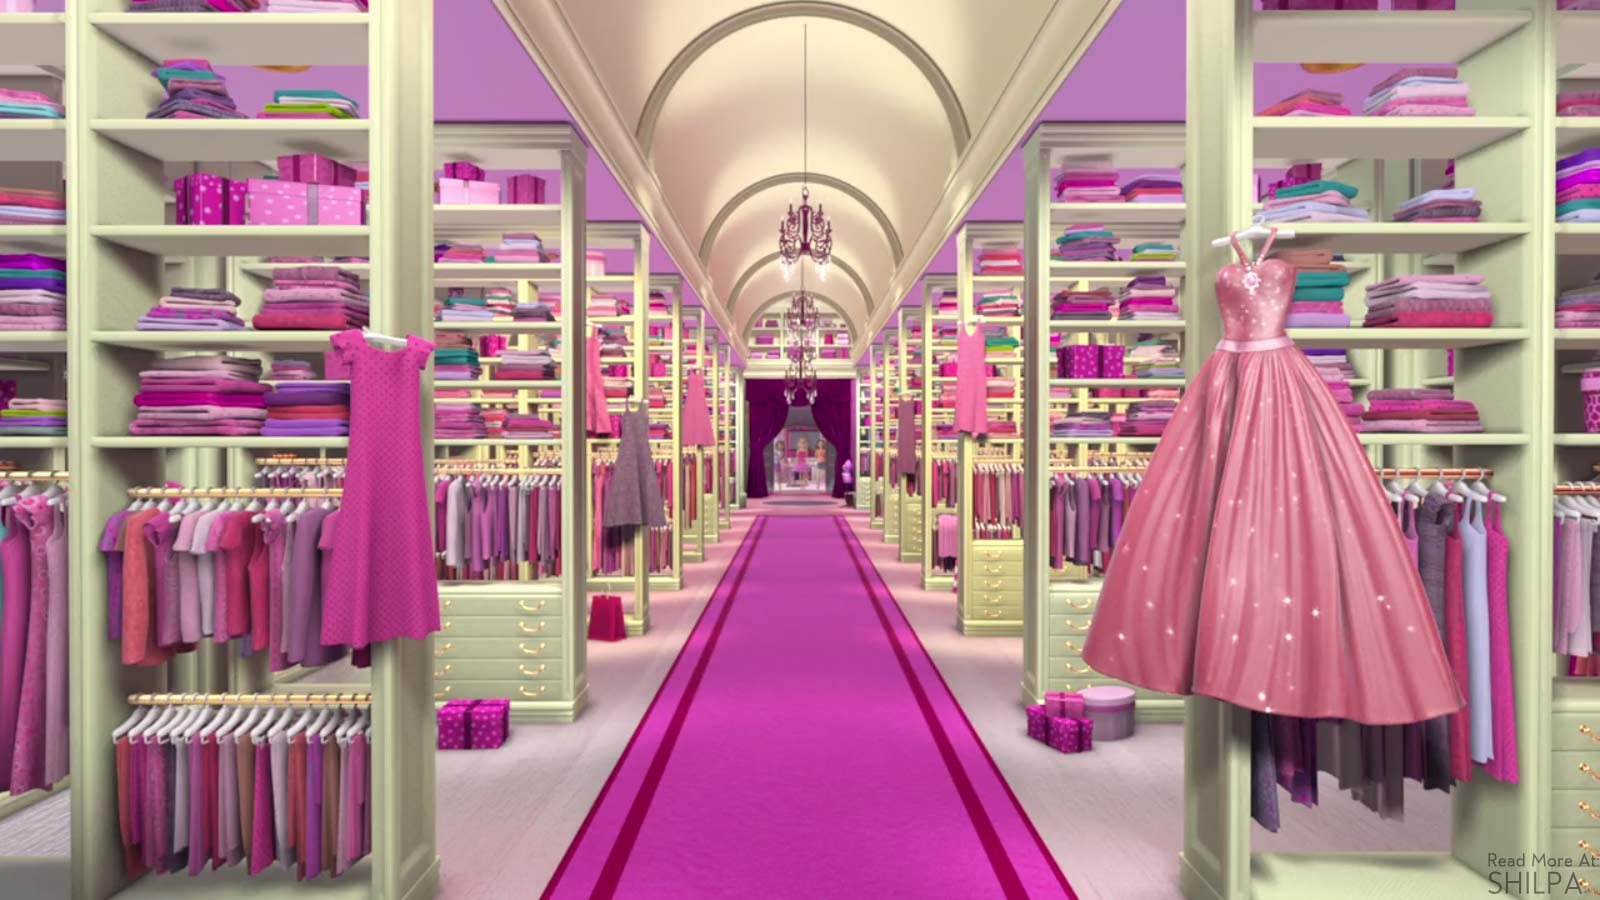 barbie-life-in-the-dreamhouse-closet-large-biggest-pink-dresses-wardrobe-cartoon-doll